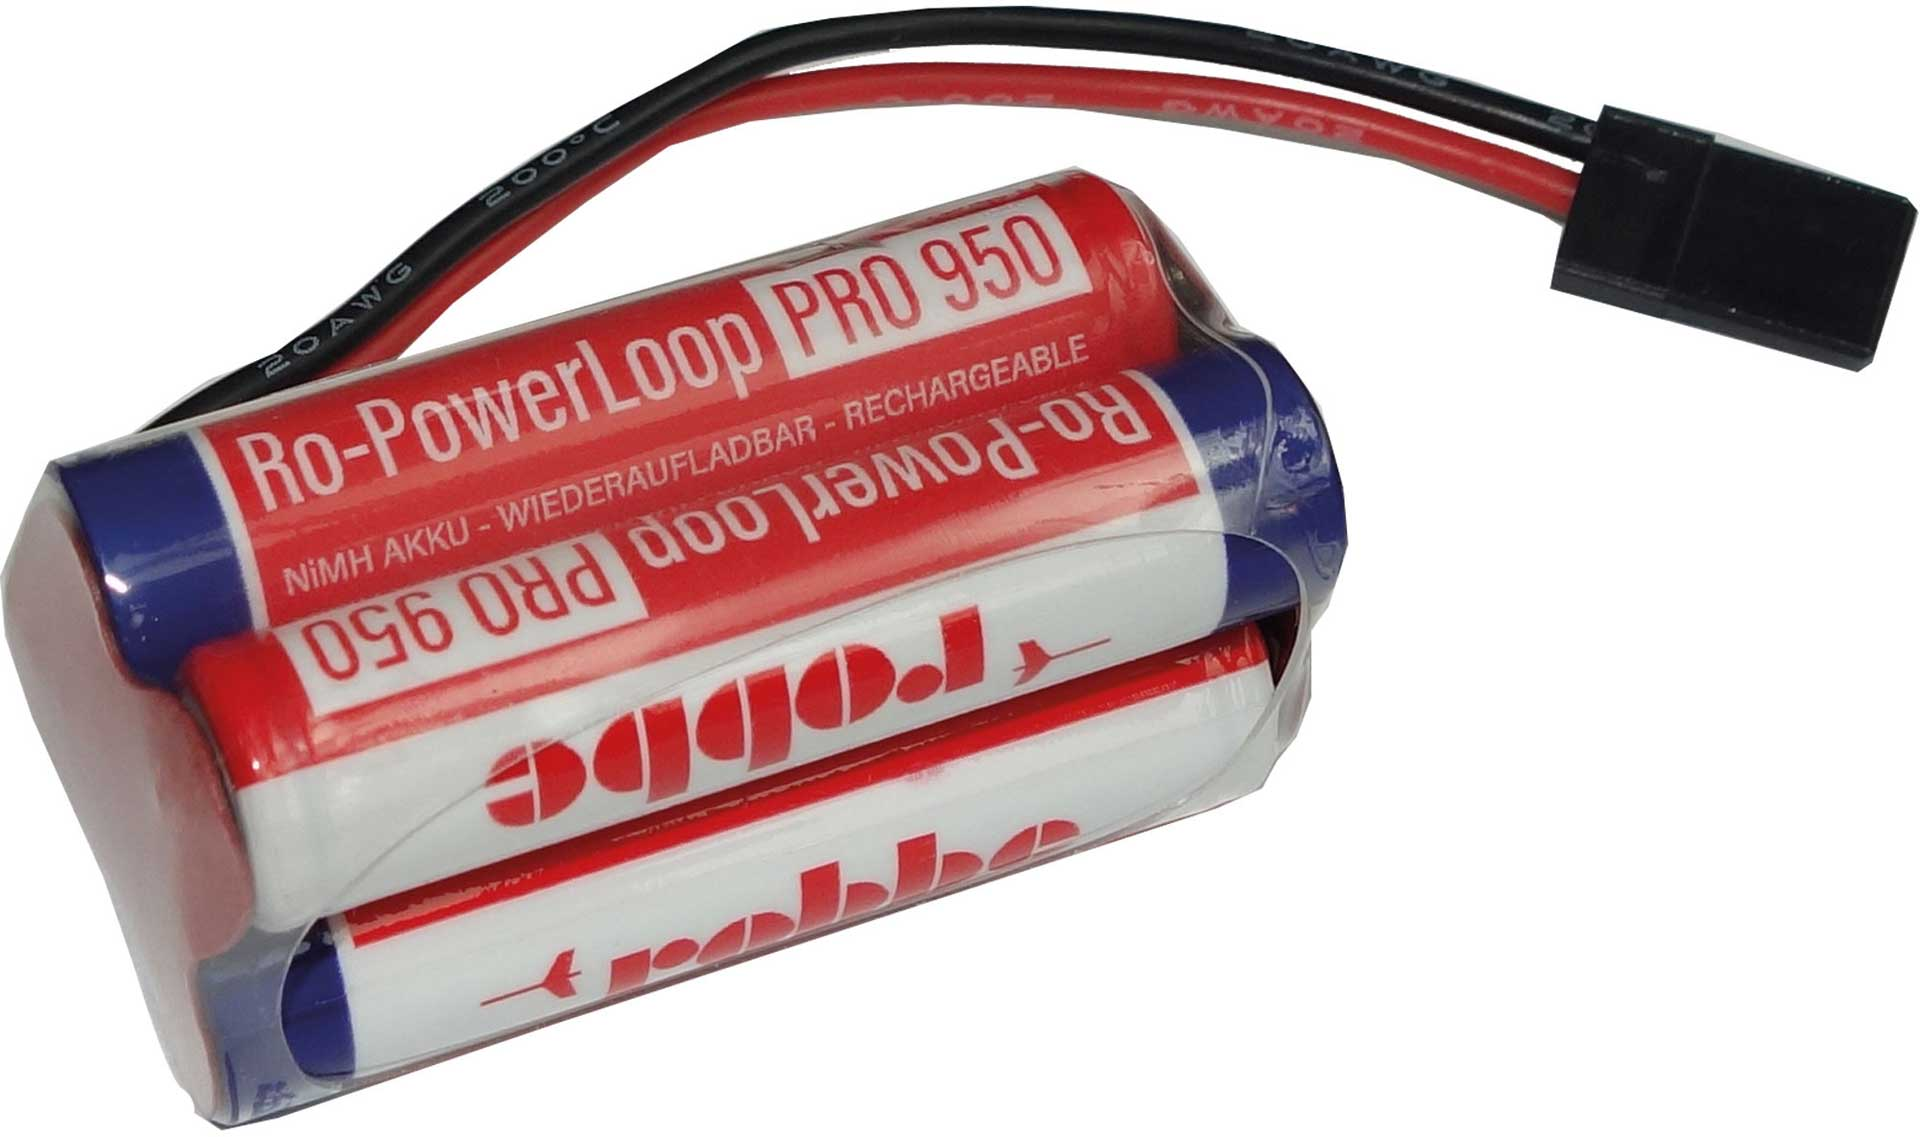 ROBBE RO-POWER LOOP MICRO AAA 950 MAH 4,8 VOLT RECEIVER BATTERY WITH JR CABLE